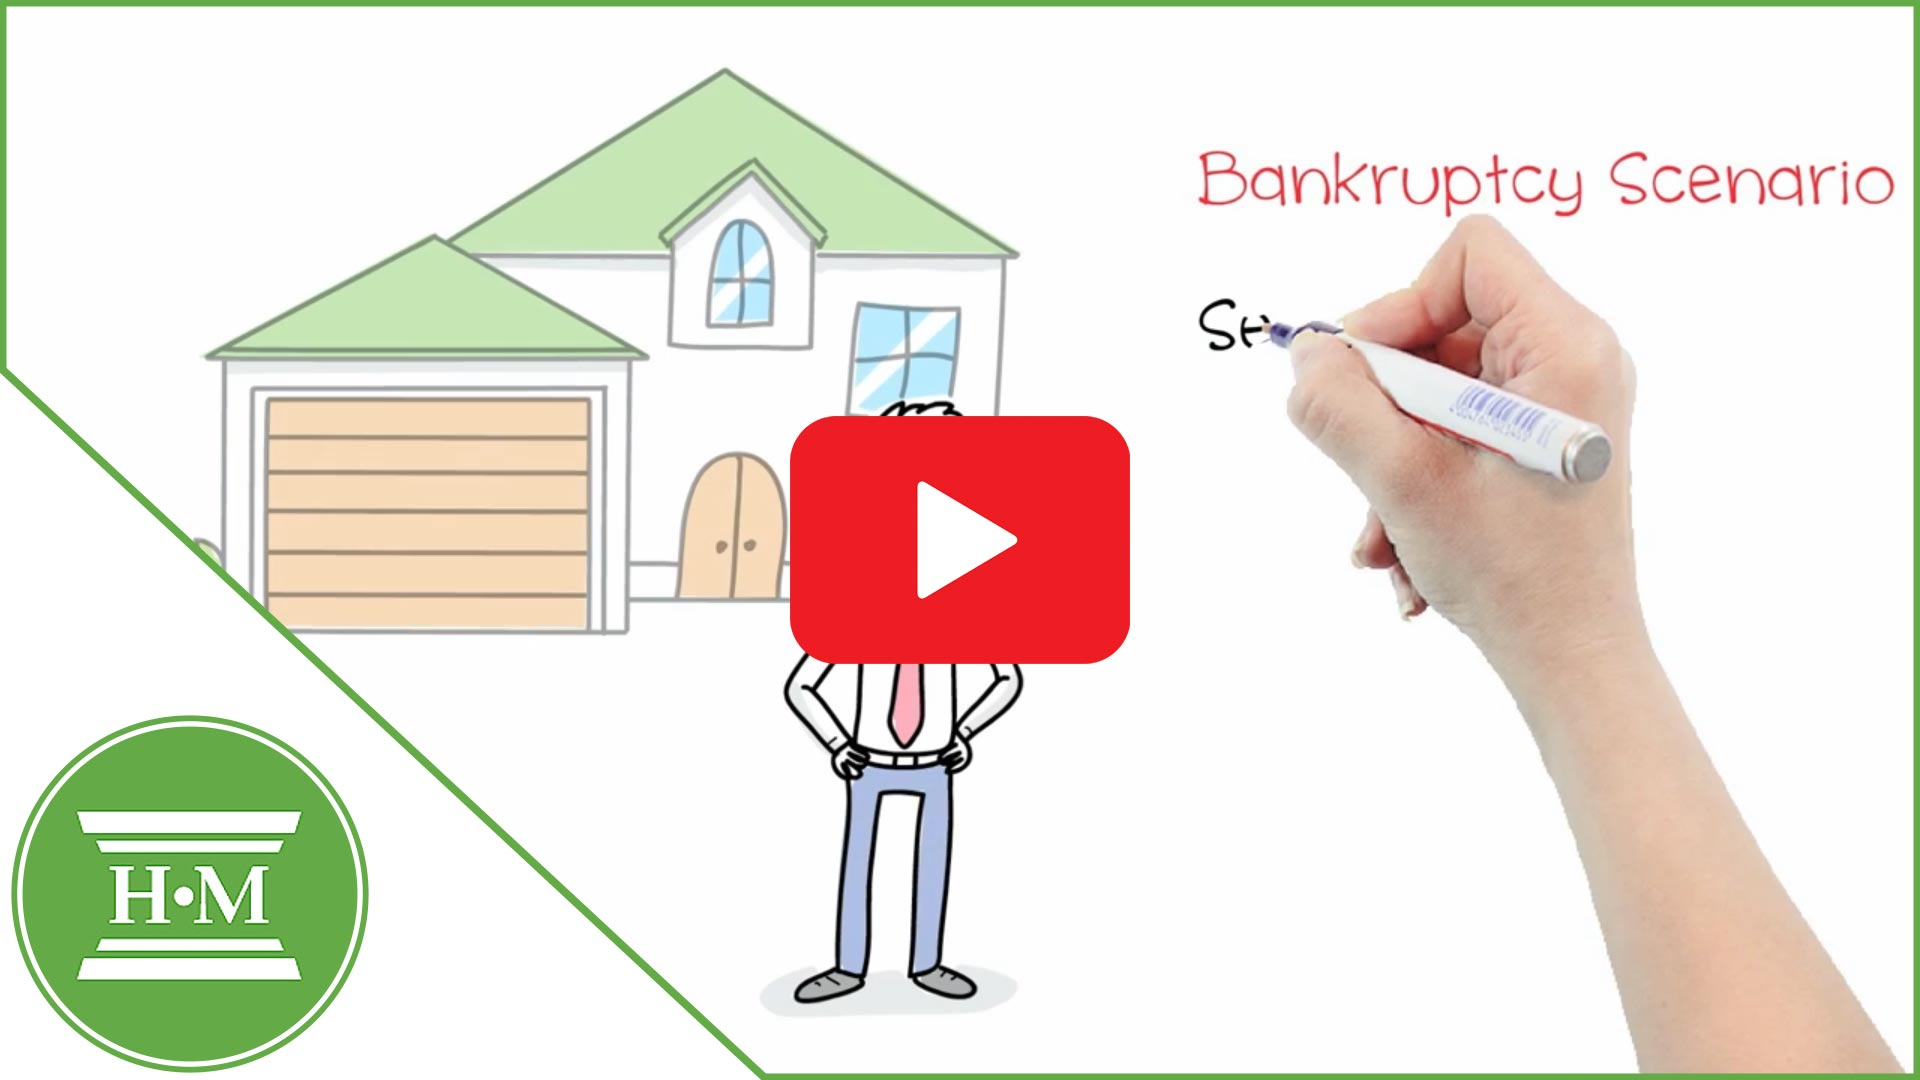 What happens to my house if I file bankruptcy in Canada?